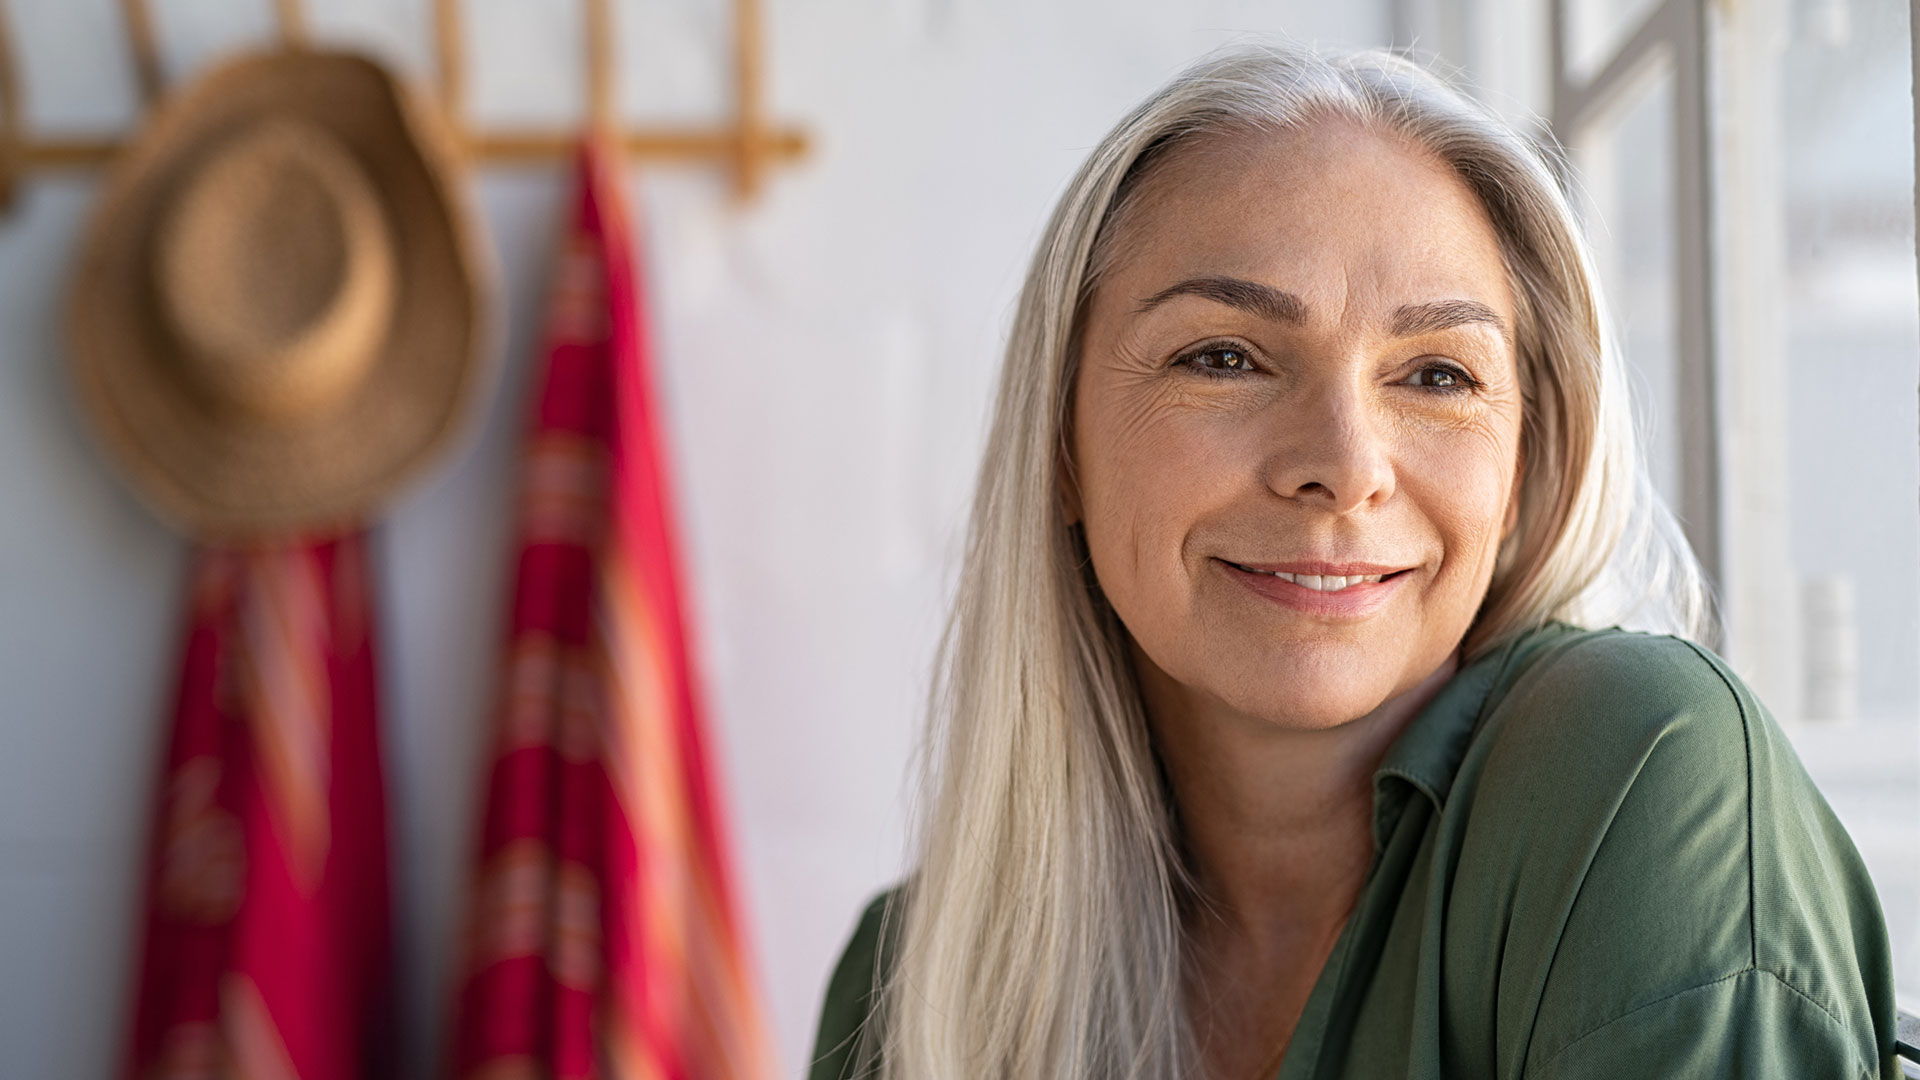 Smiling older woman using dermal filler to target facial lines and wrinkles